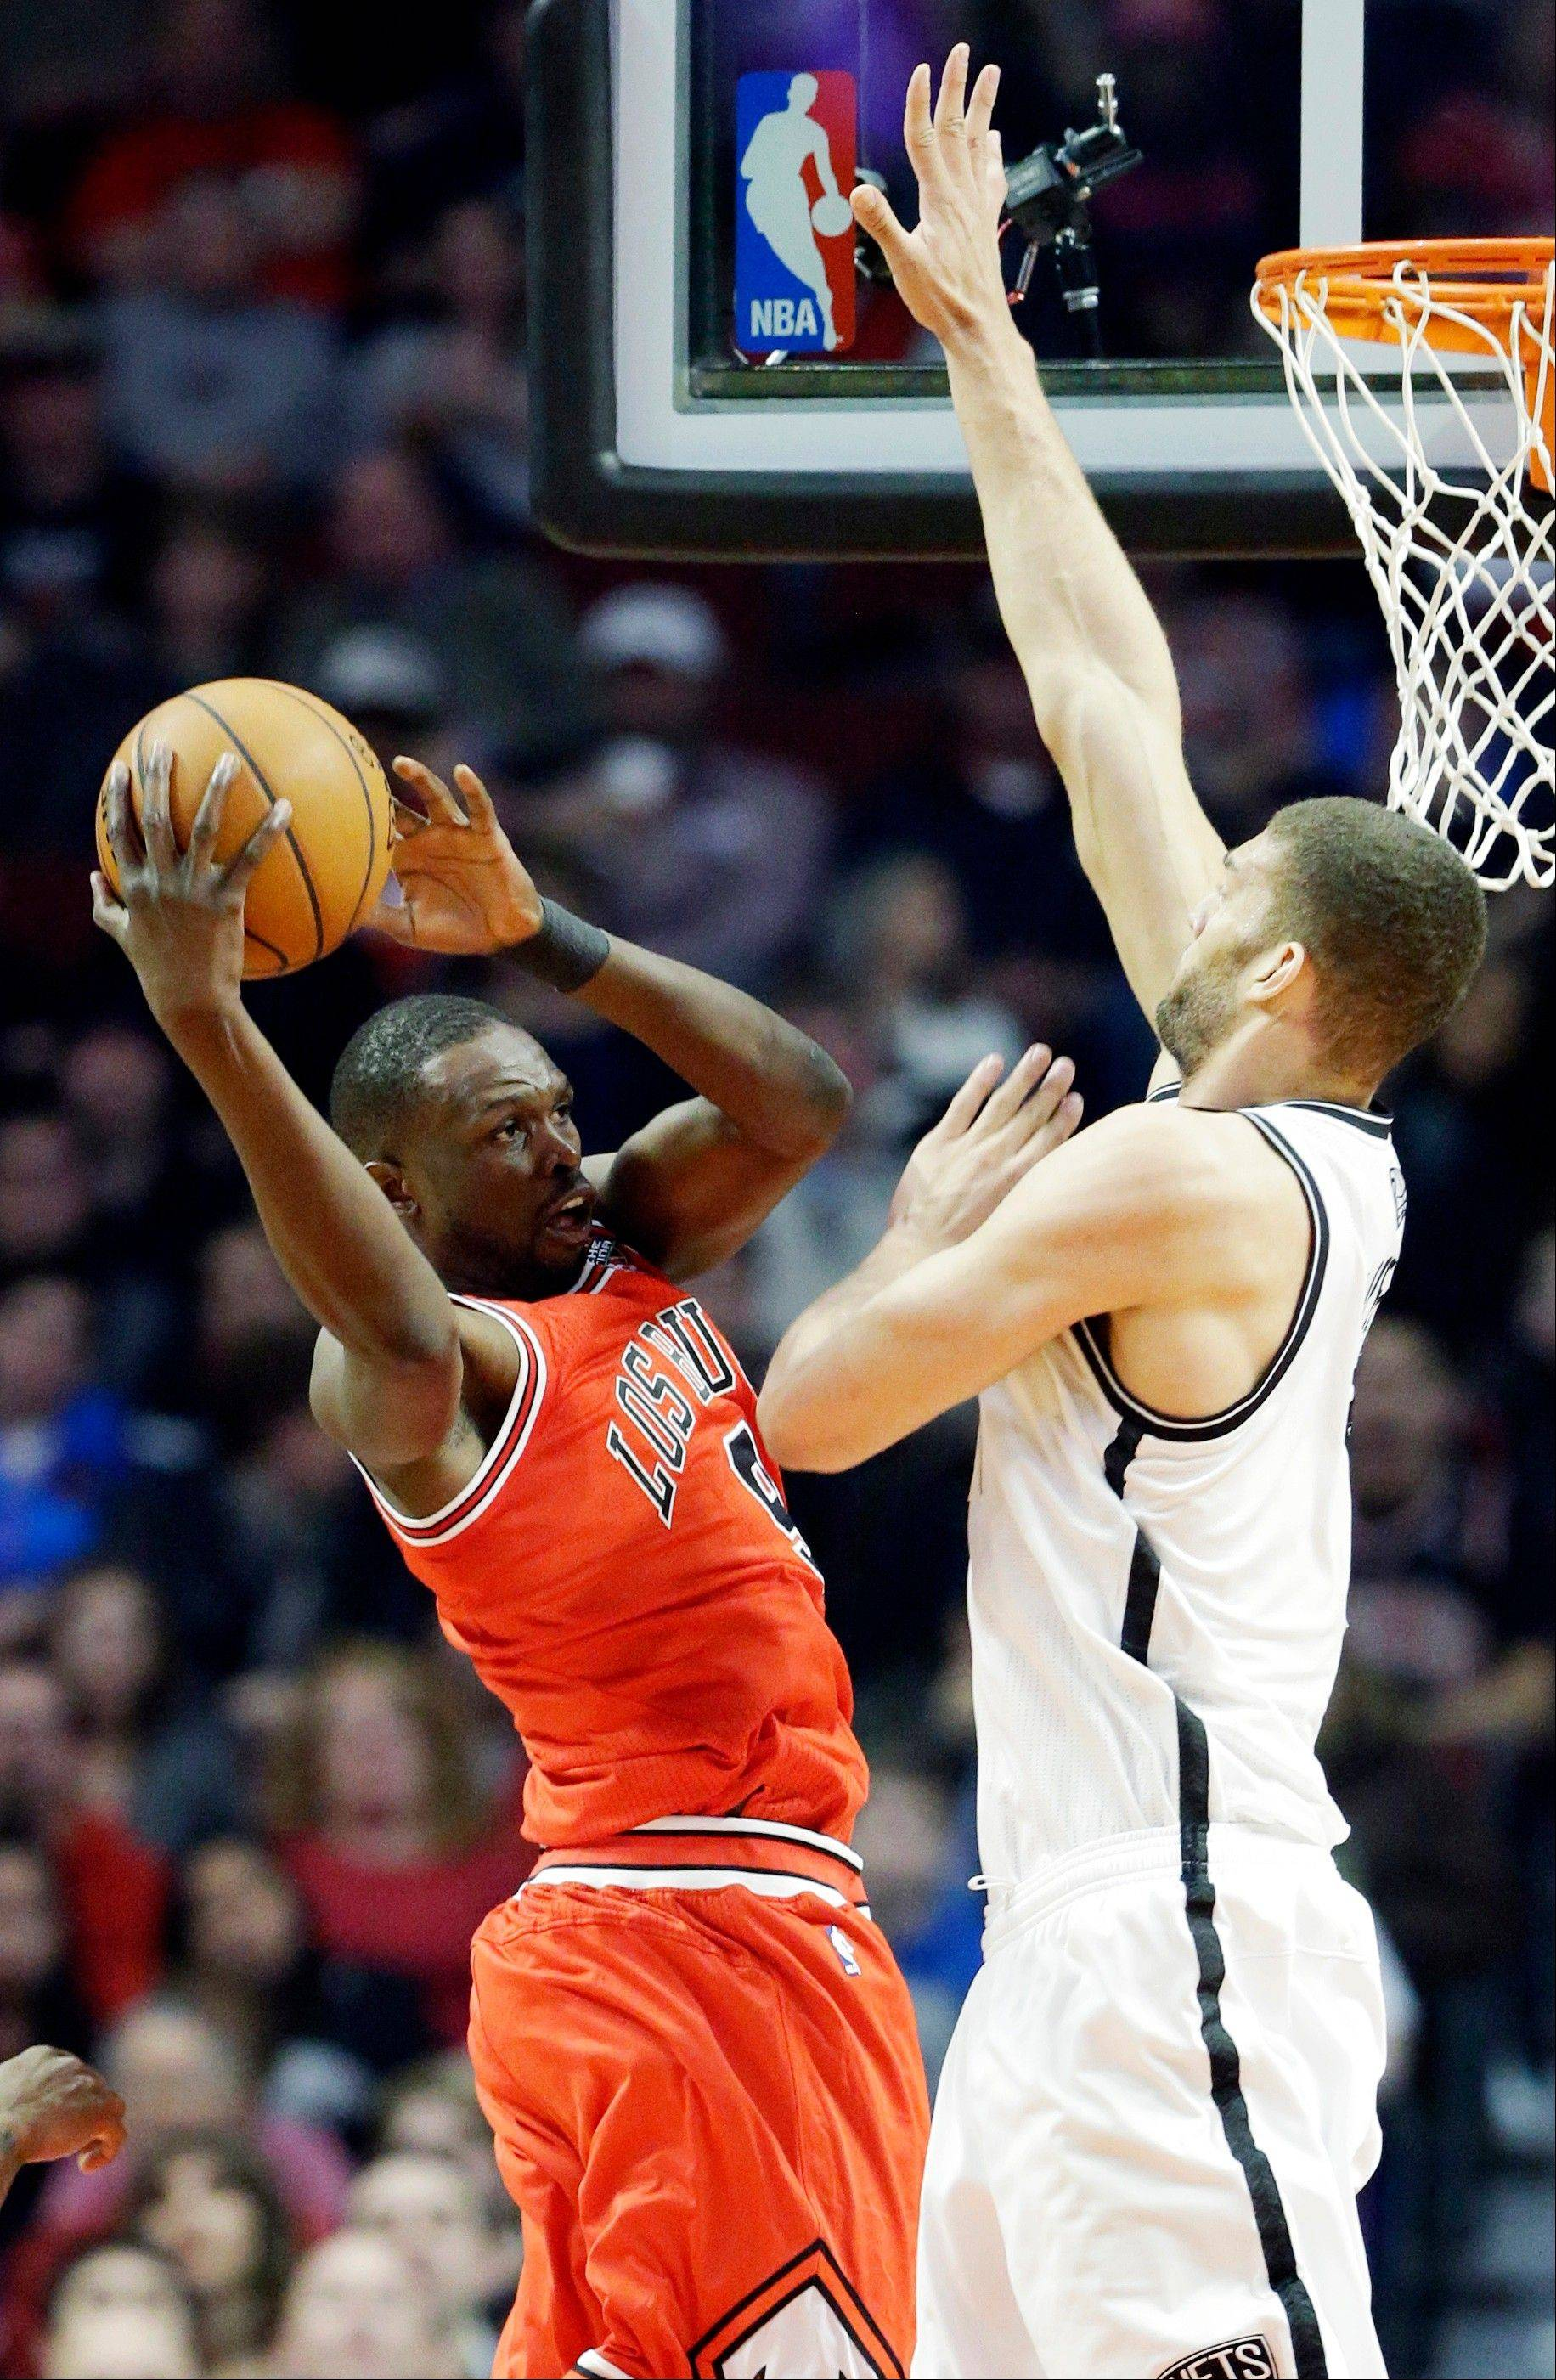 Chicago Bulls forward Luol Deng, left, of South Sudan, looks to a pass against Brooklyn Nets center Brook Lopez during the first half of an NBA basketball game in Chicago on Saturday, March 2, 2013.